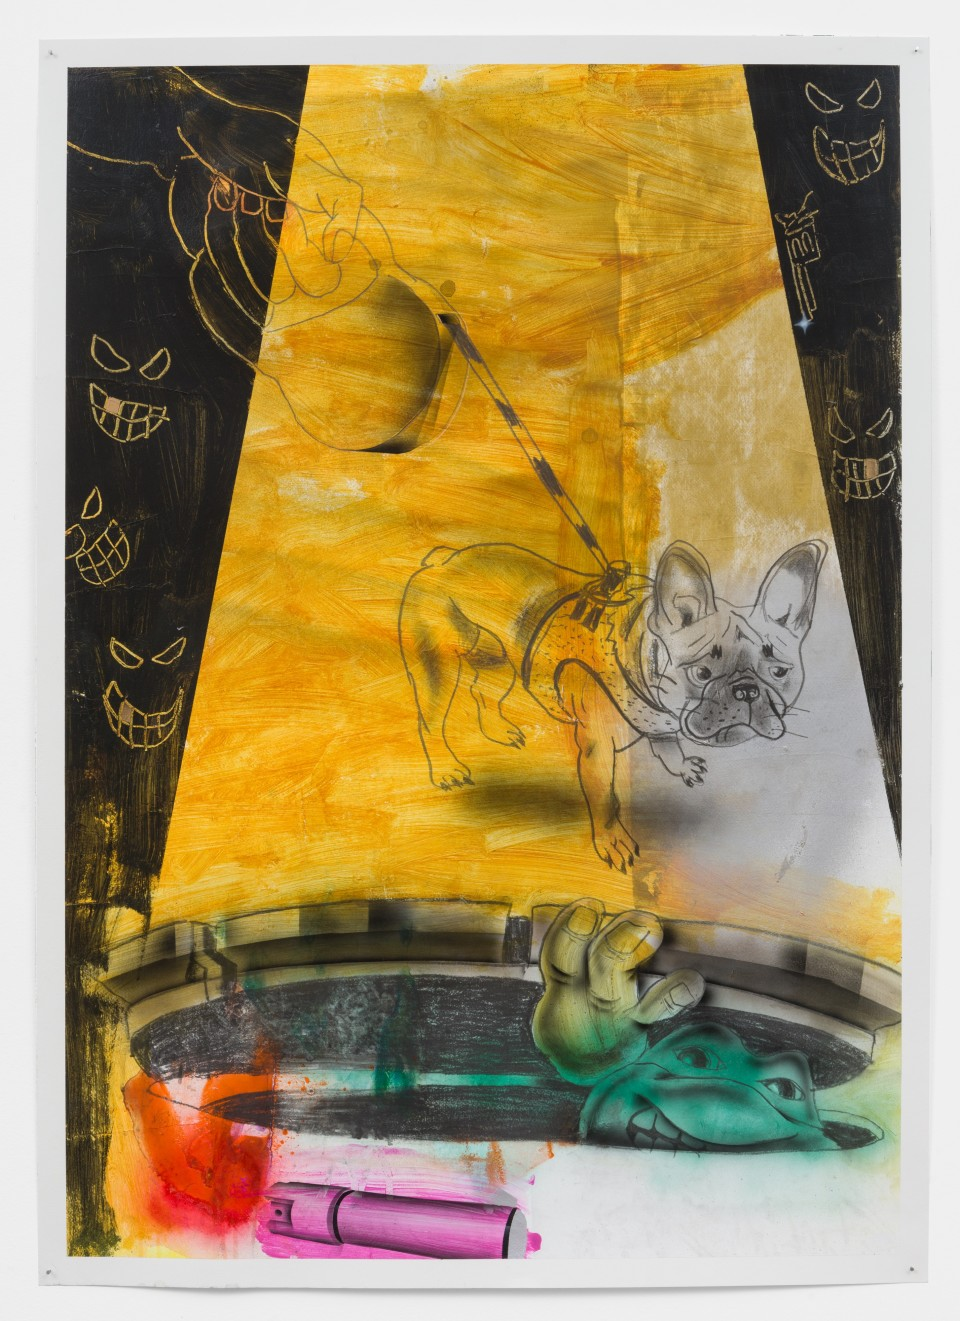 """Artwork: Pat Phillips  Untitled """"Bad timing"""" / """"They stealin' everybody Frenchie out here..."""", 2021  signed and dated verso  acrylic, pencil, graphite stick airbrush, aerosol paint on paper  paper size: 42 x 29 1/2 inches (106.7 x 74.9 cm)  framed size: 43 7/8 x 32 1/8 inches (111.44 x 81.59 cm)"""